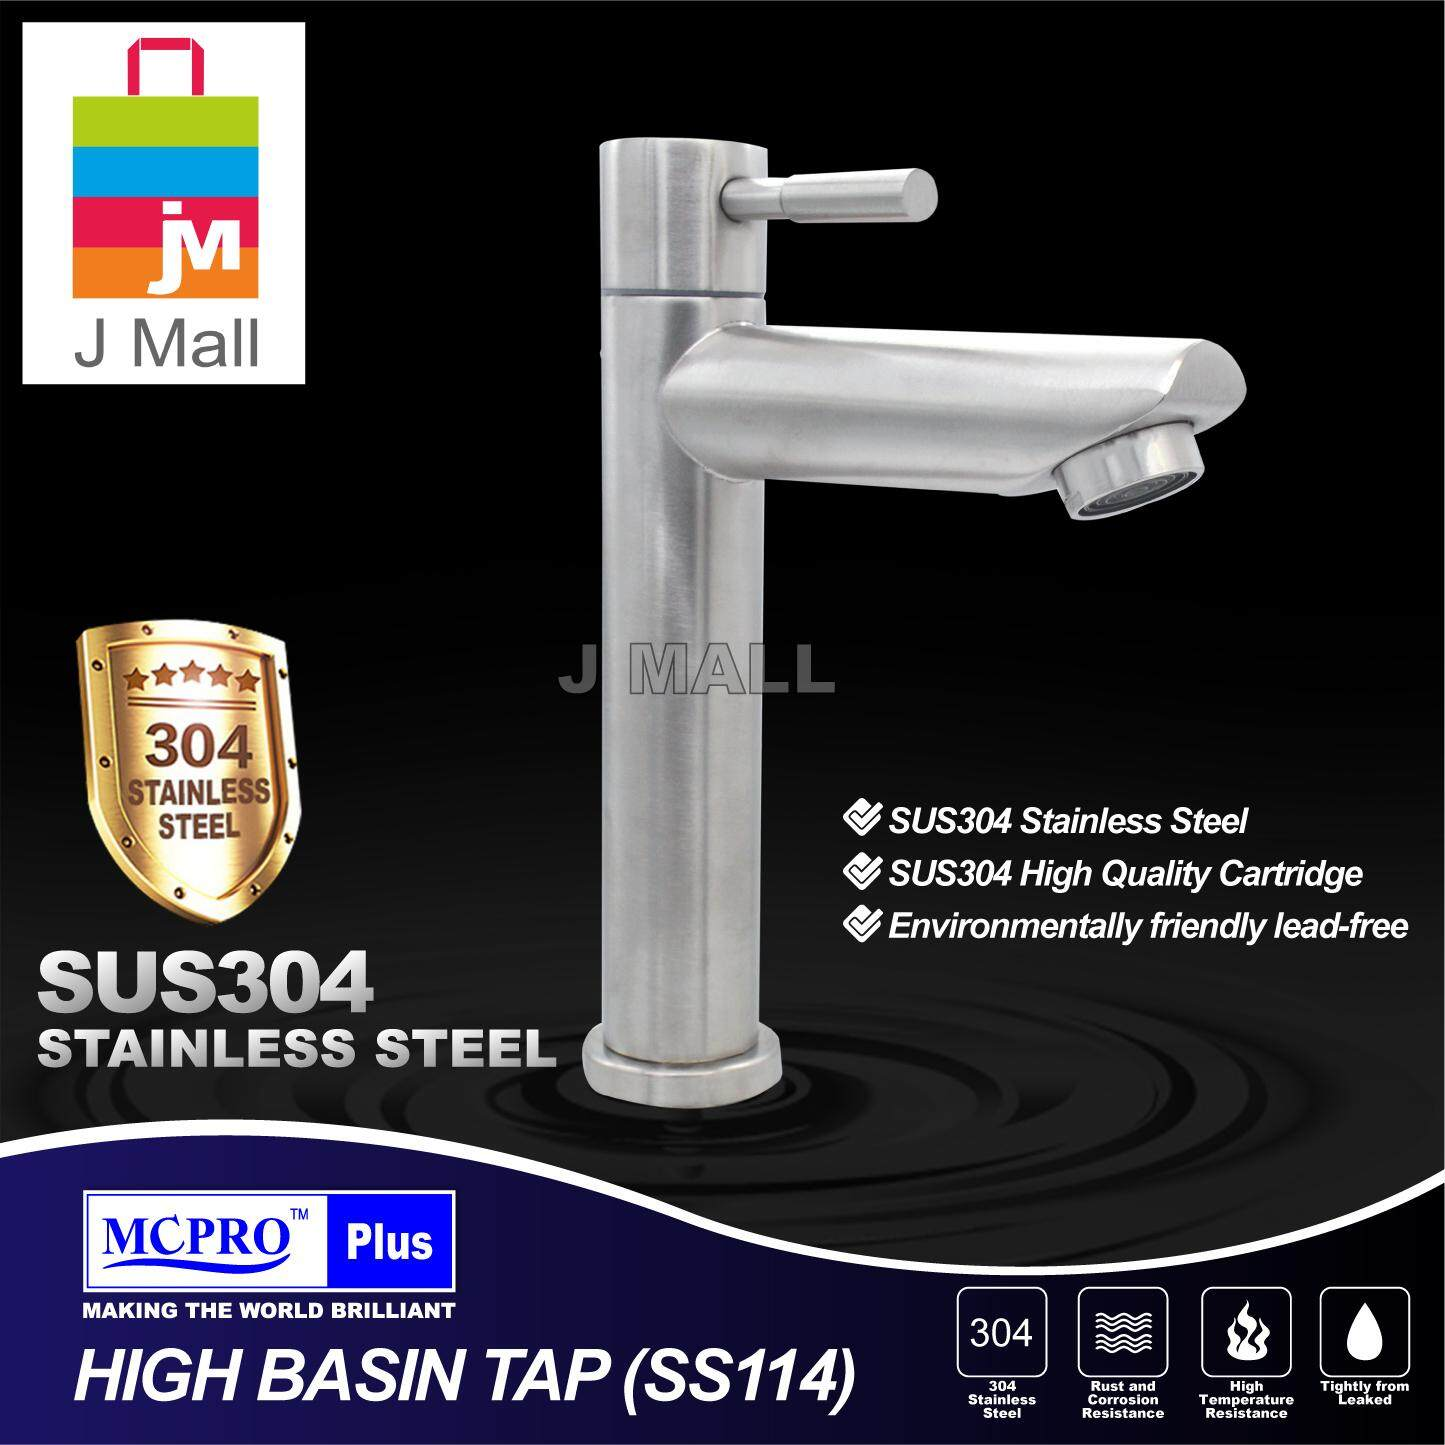 MCPRO PLUS STAINLESS STEEL SUS304 BATHROOM FAUCET BASIN TAP (SS114 )